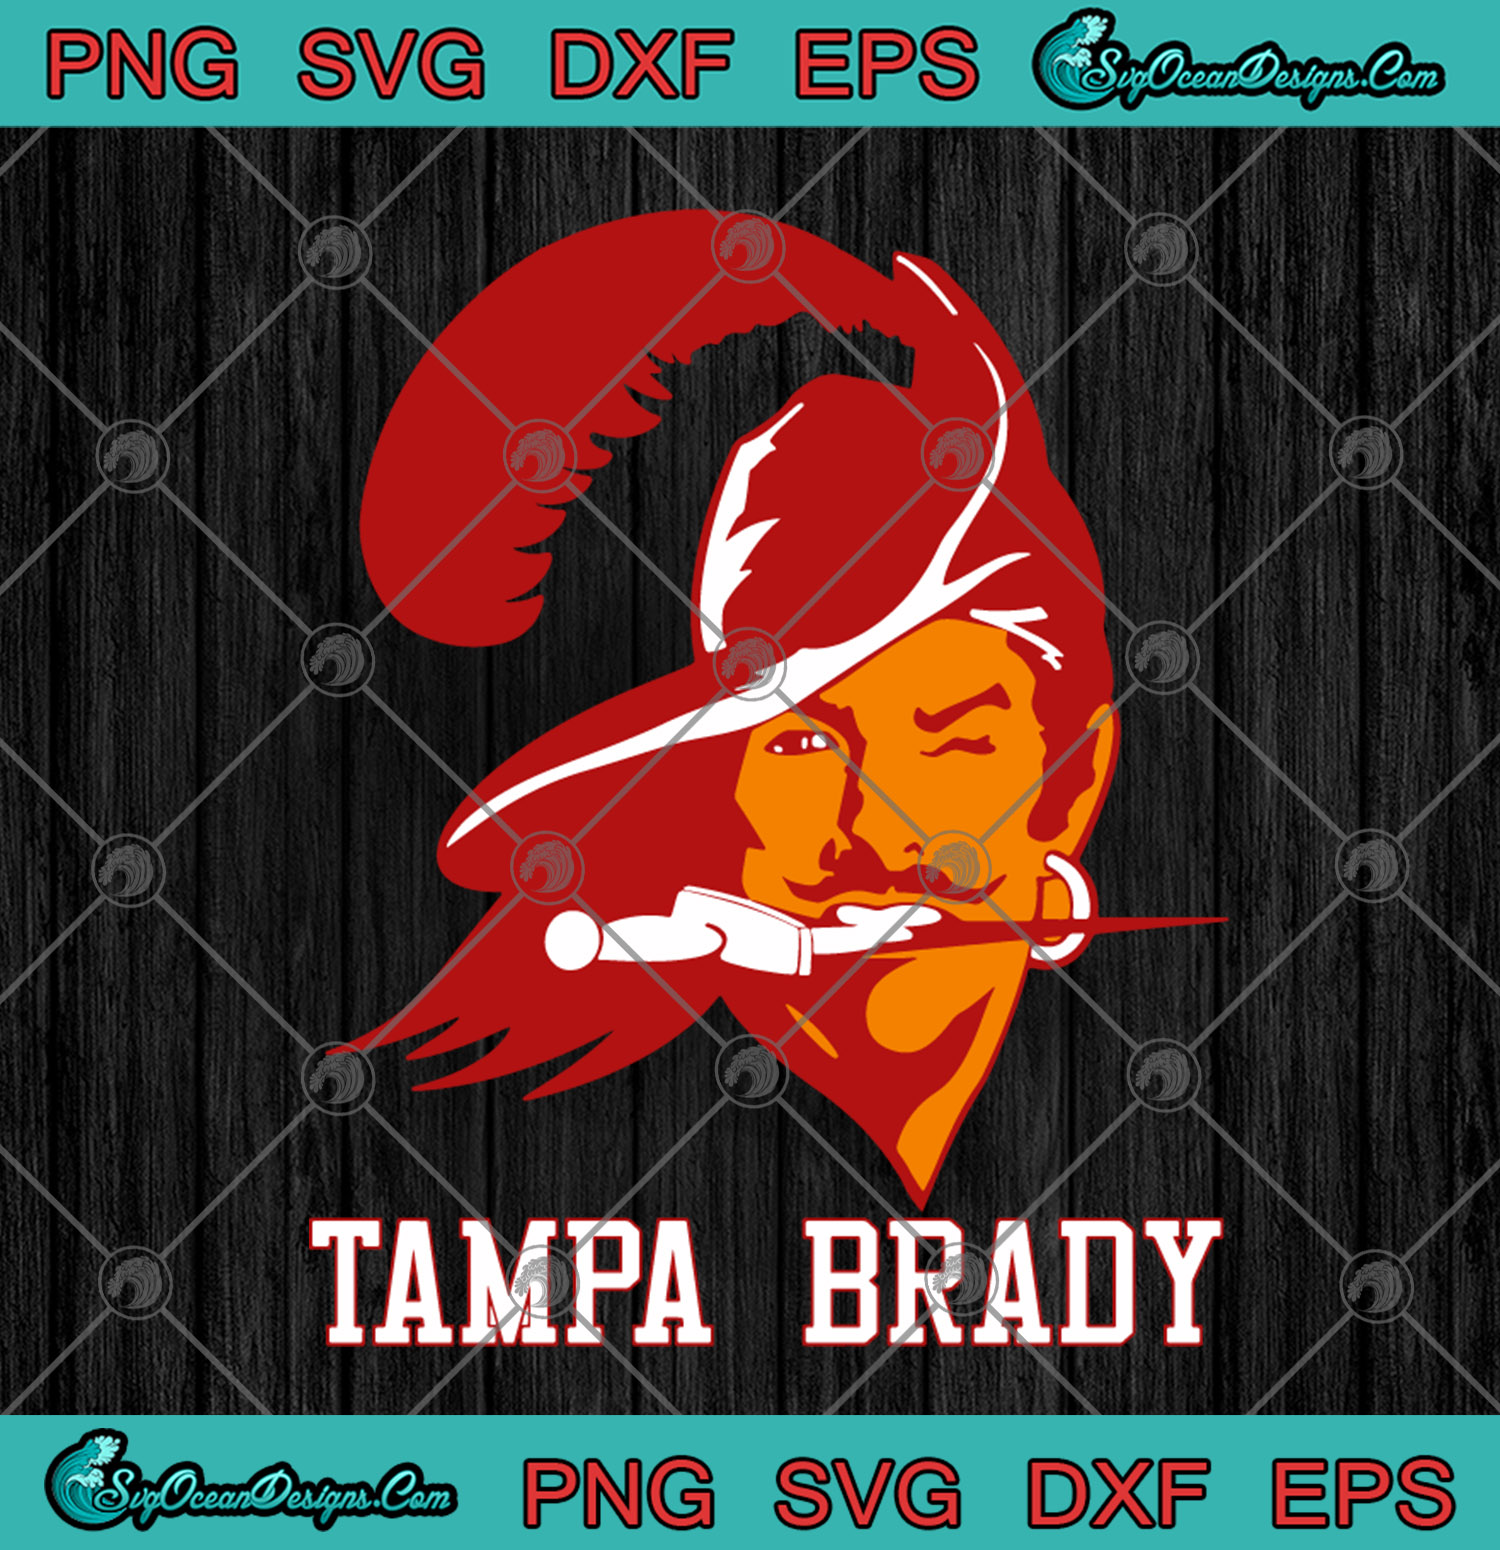 American Football Tommy Tampa Tom Brady Tampa Bay Buccaneers Svg Png Dxf Eps Tom Brady Football Cutting File Cricut Silhouette Art Designs Digital Download